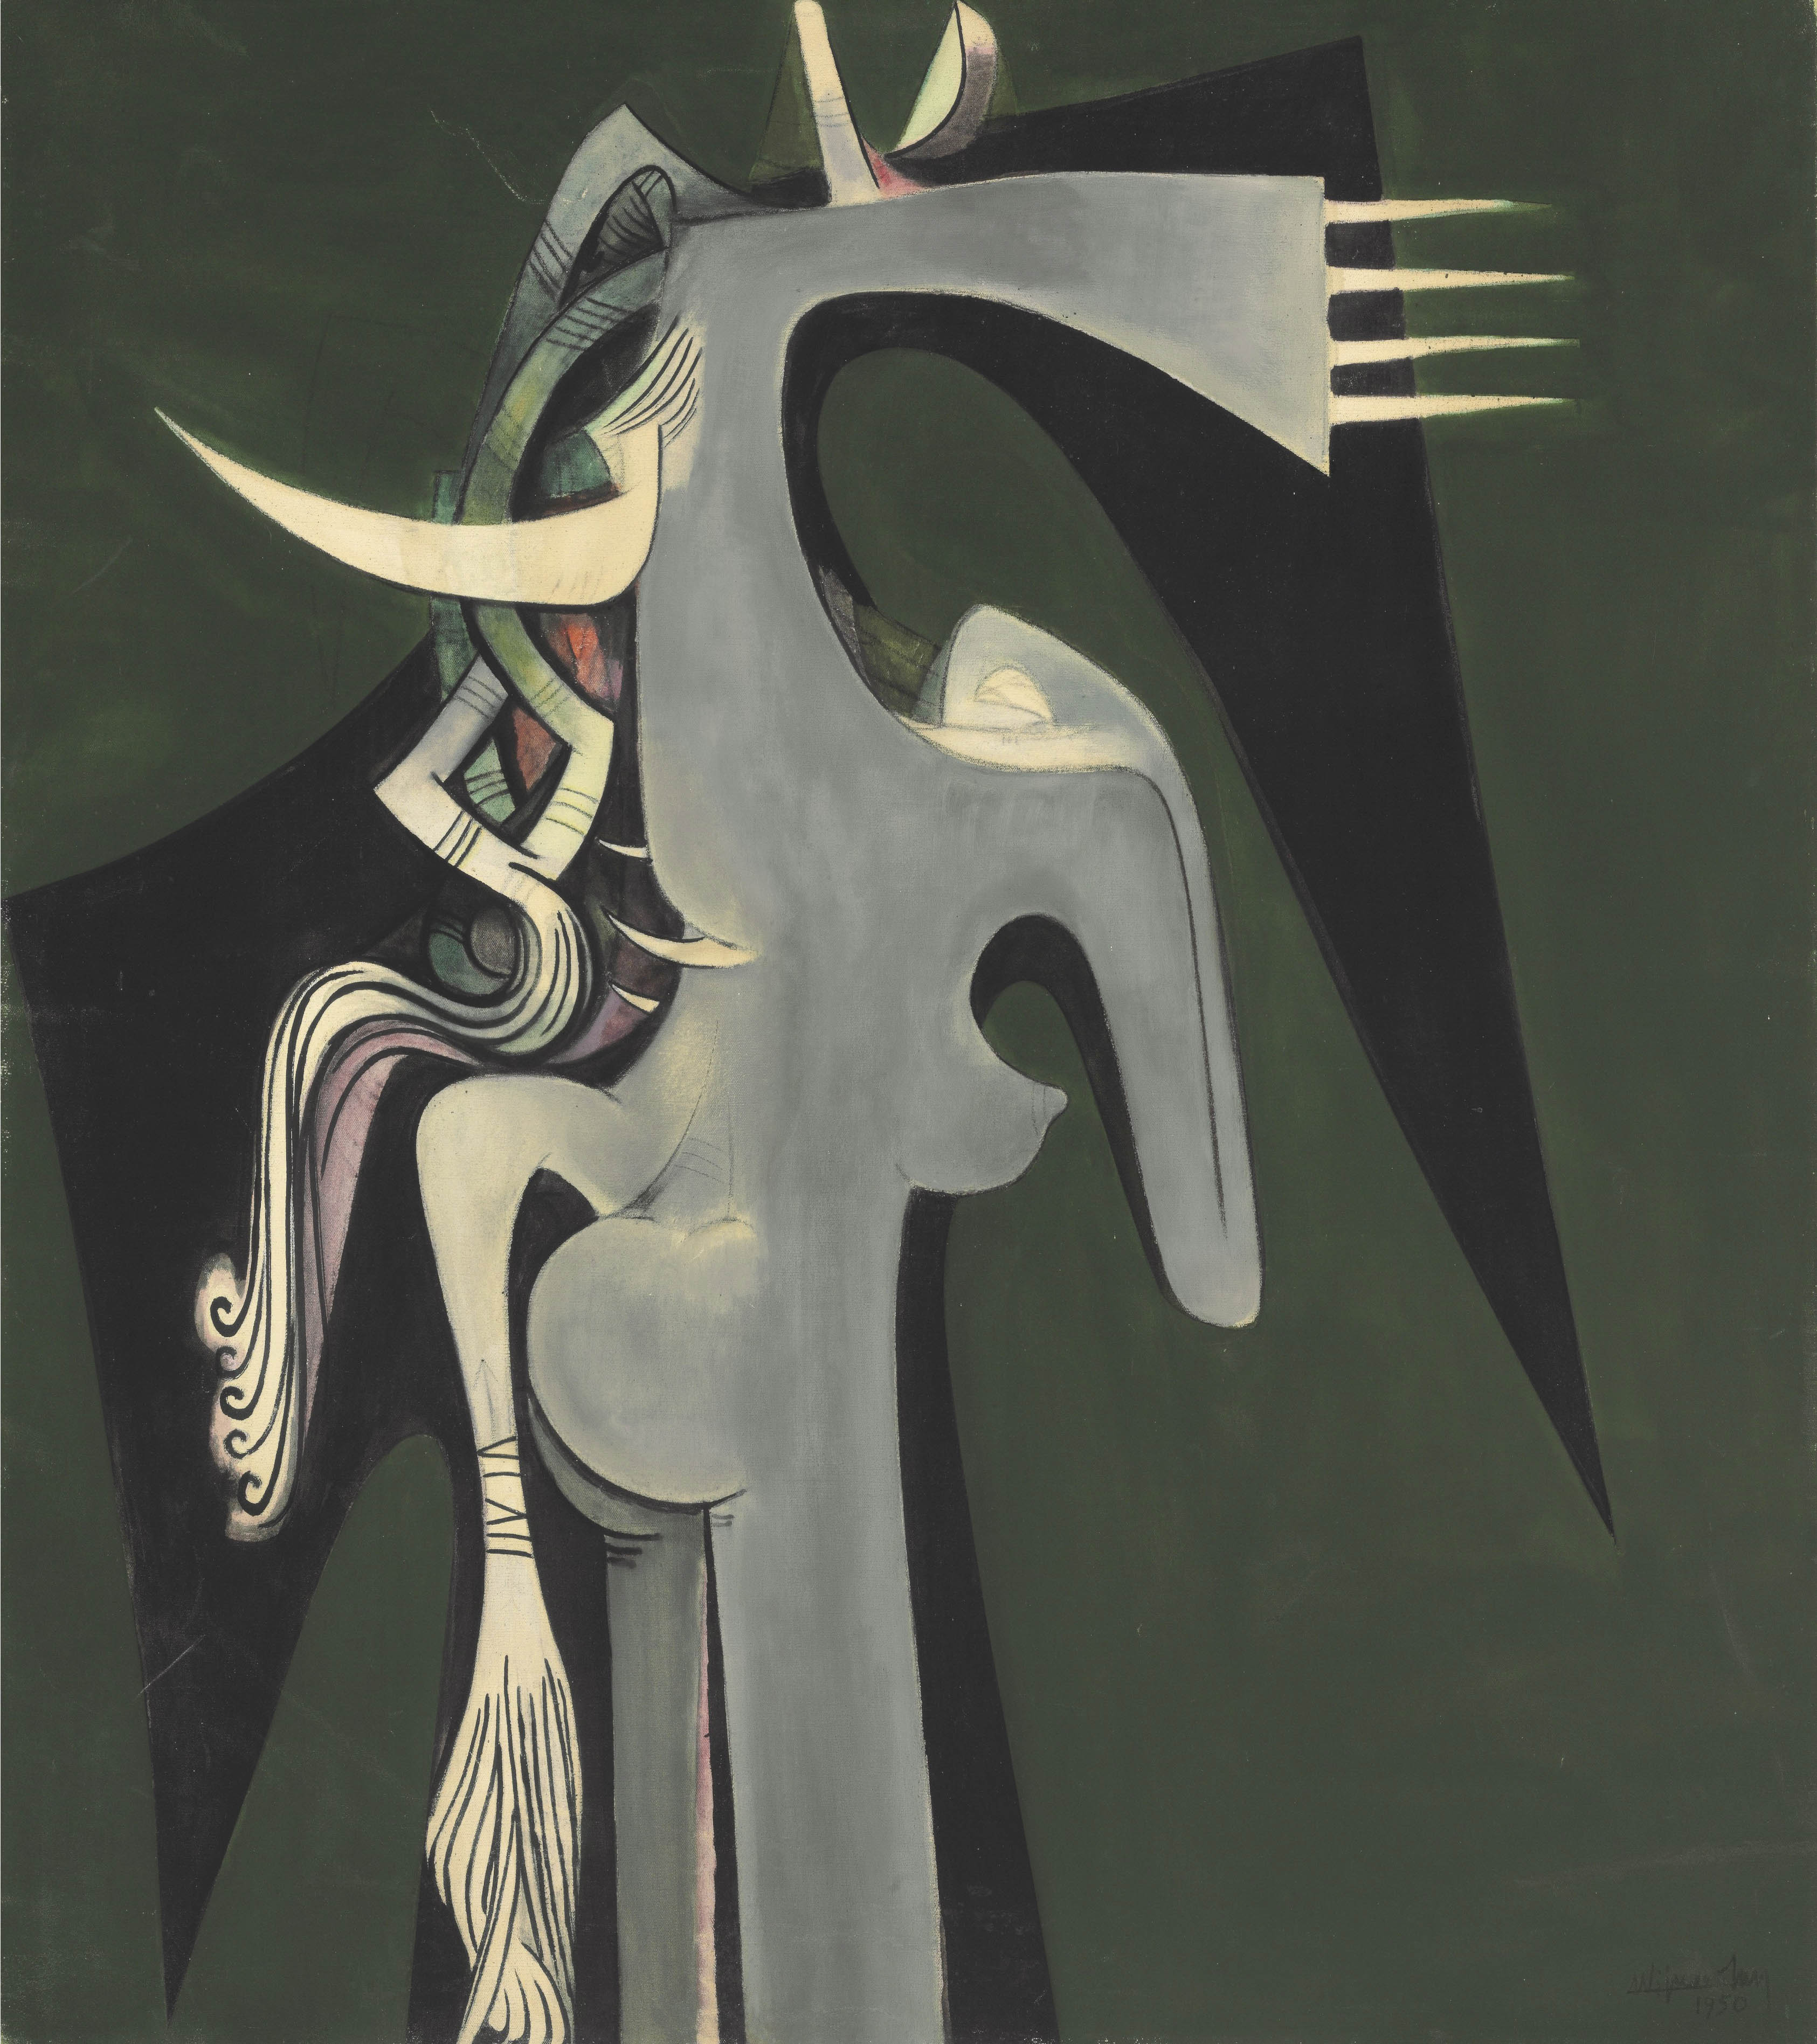 Horse-headed Woman, Wifredo Lam. 1950